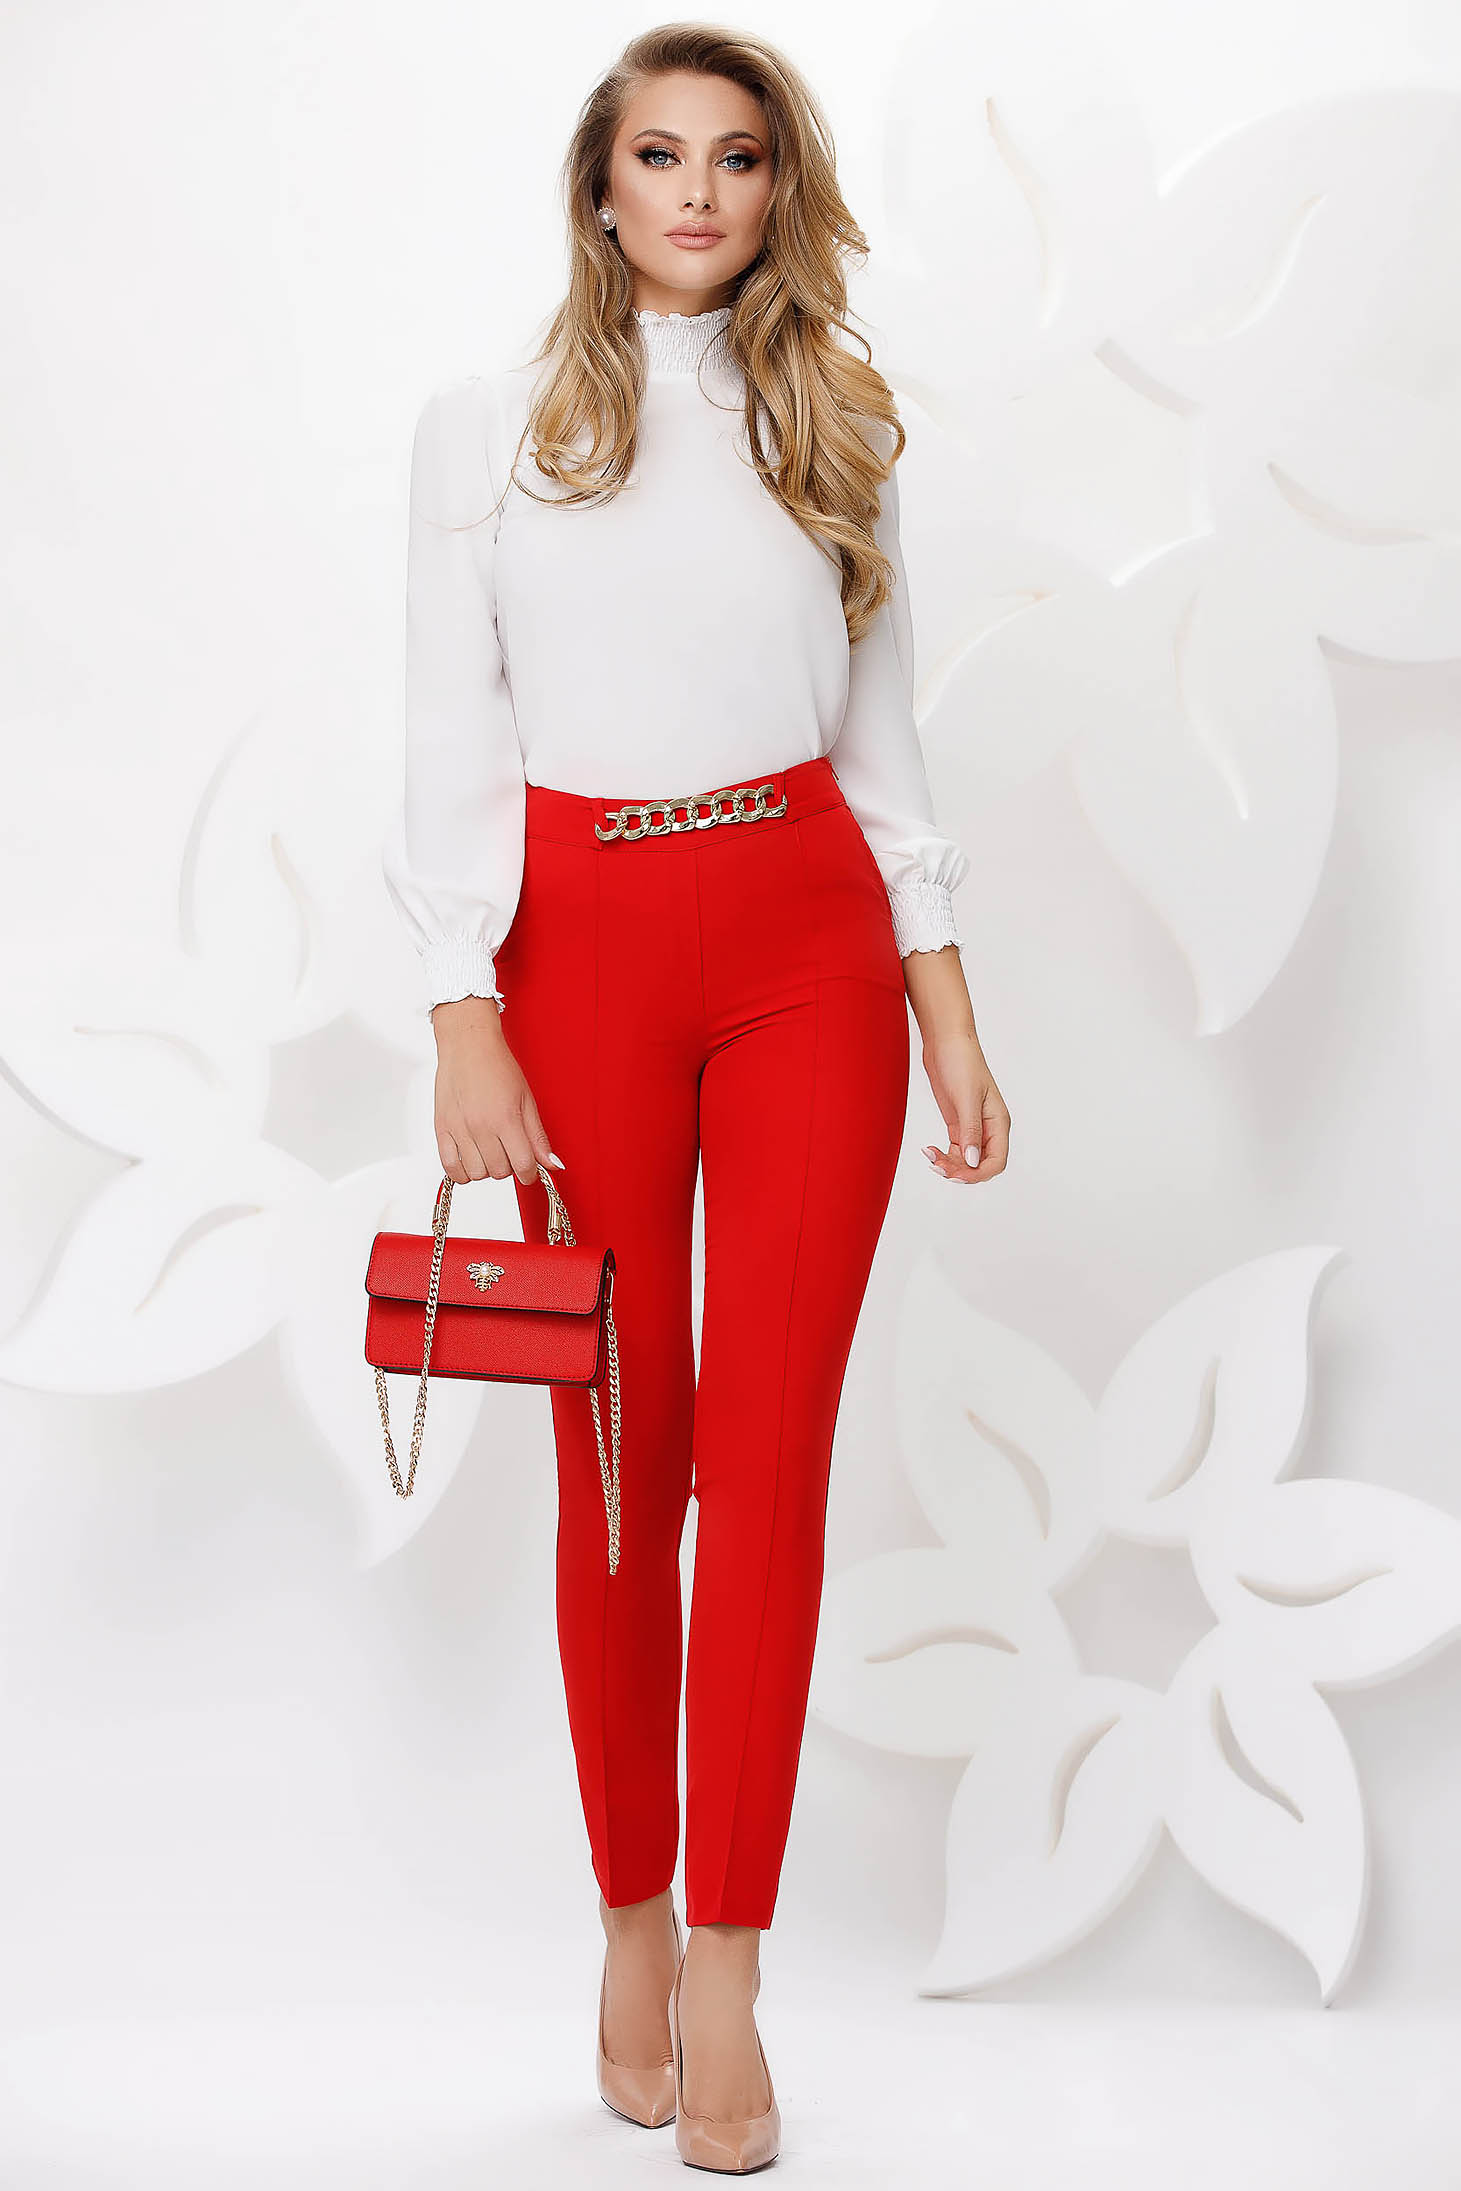 Red trousers office conical metallic chain accessory